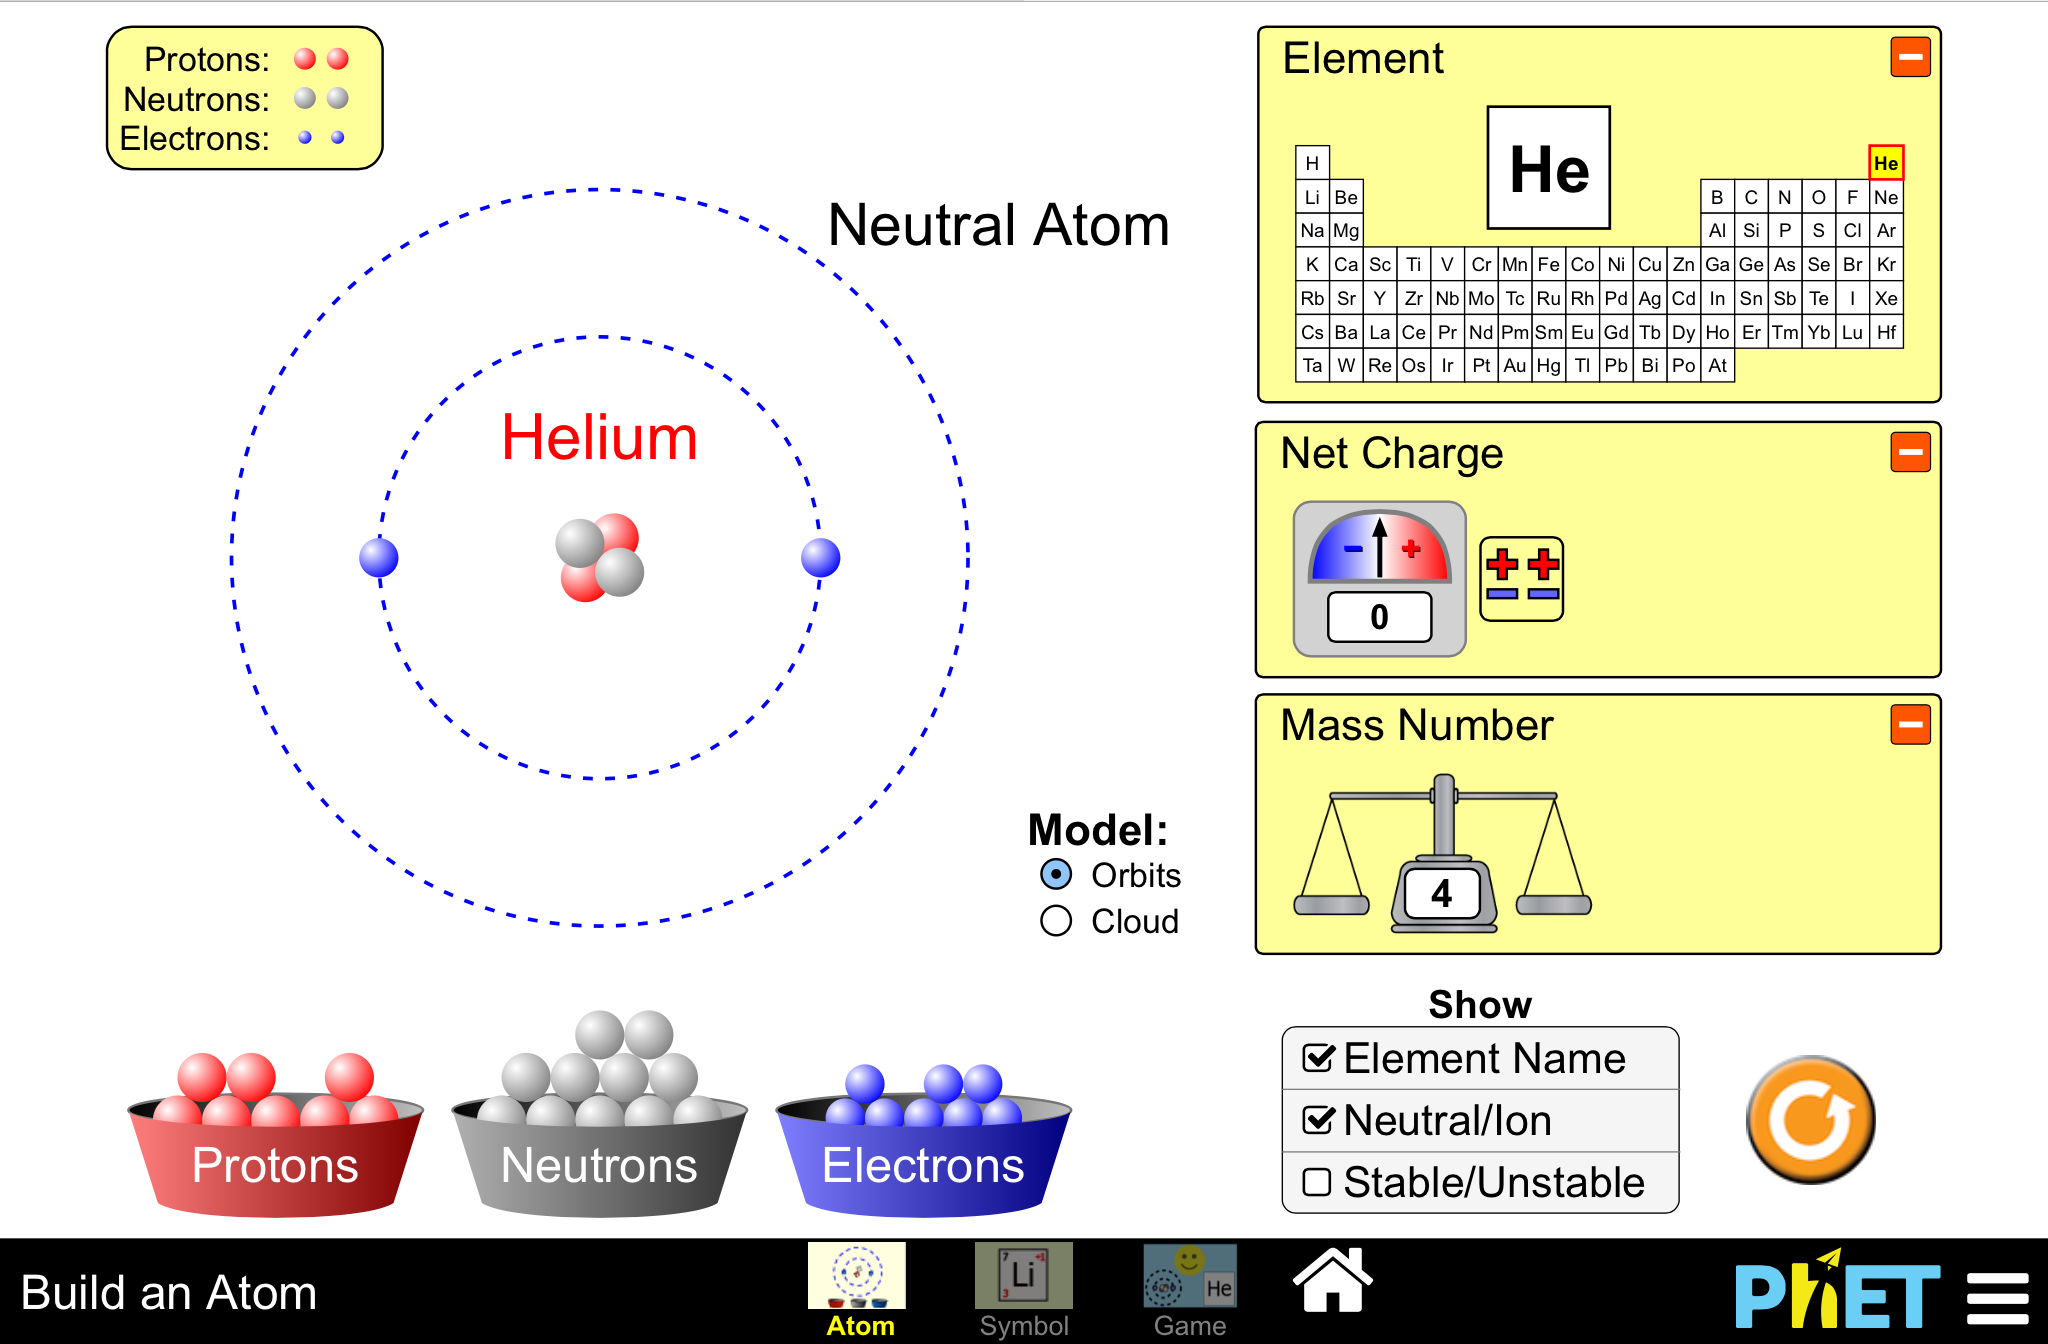 Alien periodic table adobe reader fillable build an atom out of protons neutrons and electrons and s gamestrikefo Image collections